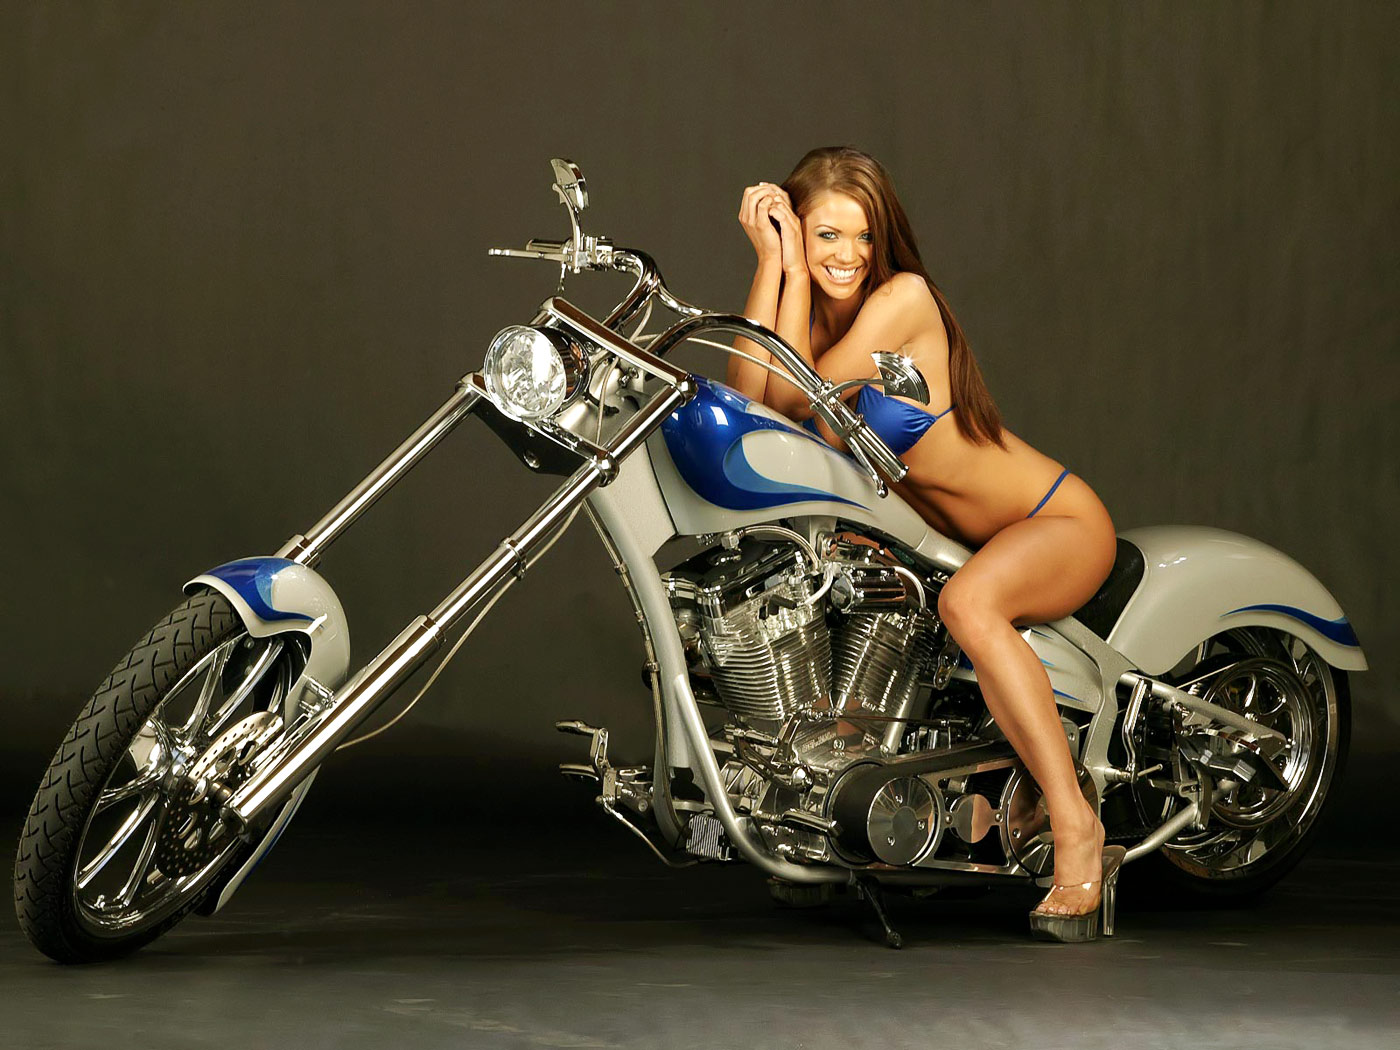 http://3.bp.blogspot.com/-At6L48XtA-o/TXYNImxkLfI/AAAAAAAAJic/bIxOzUHmvQU/s1600/Cruiser_Custom_Cycle_and_super_Babe_wallpaper.jpg